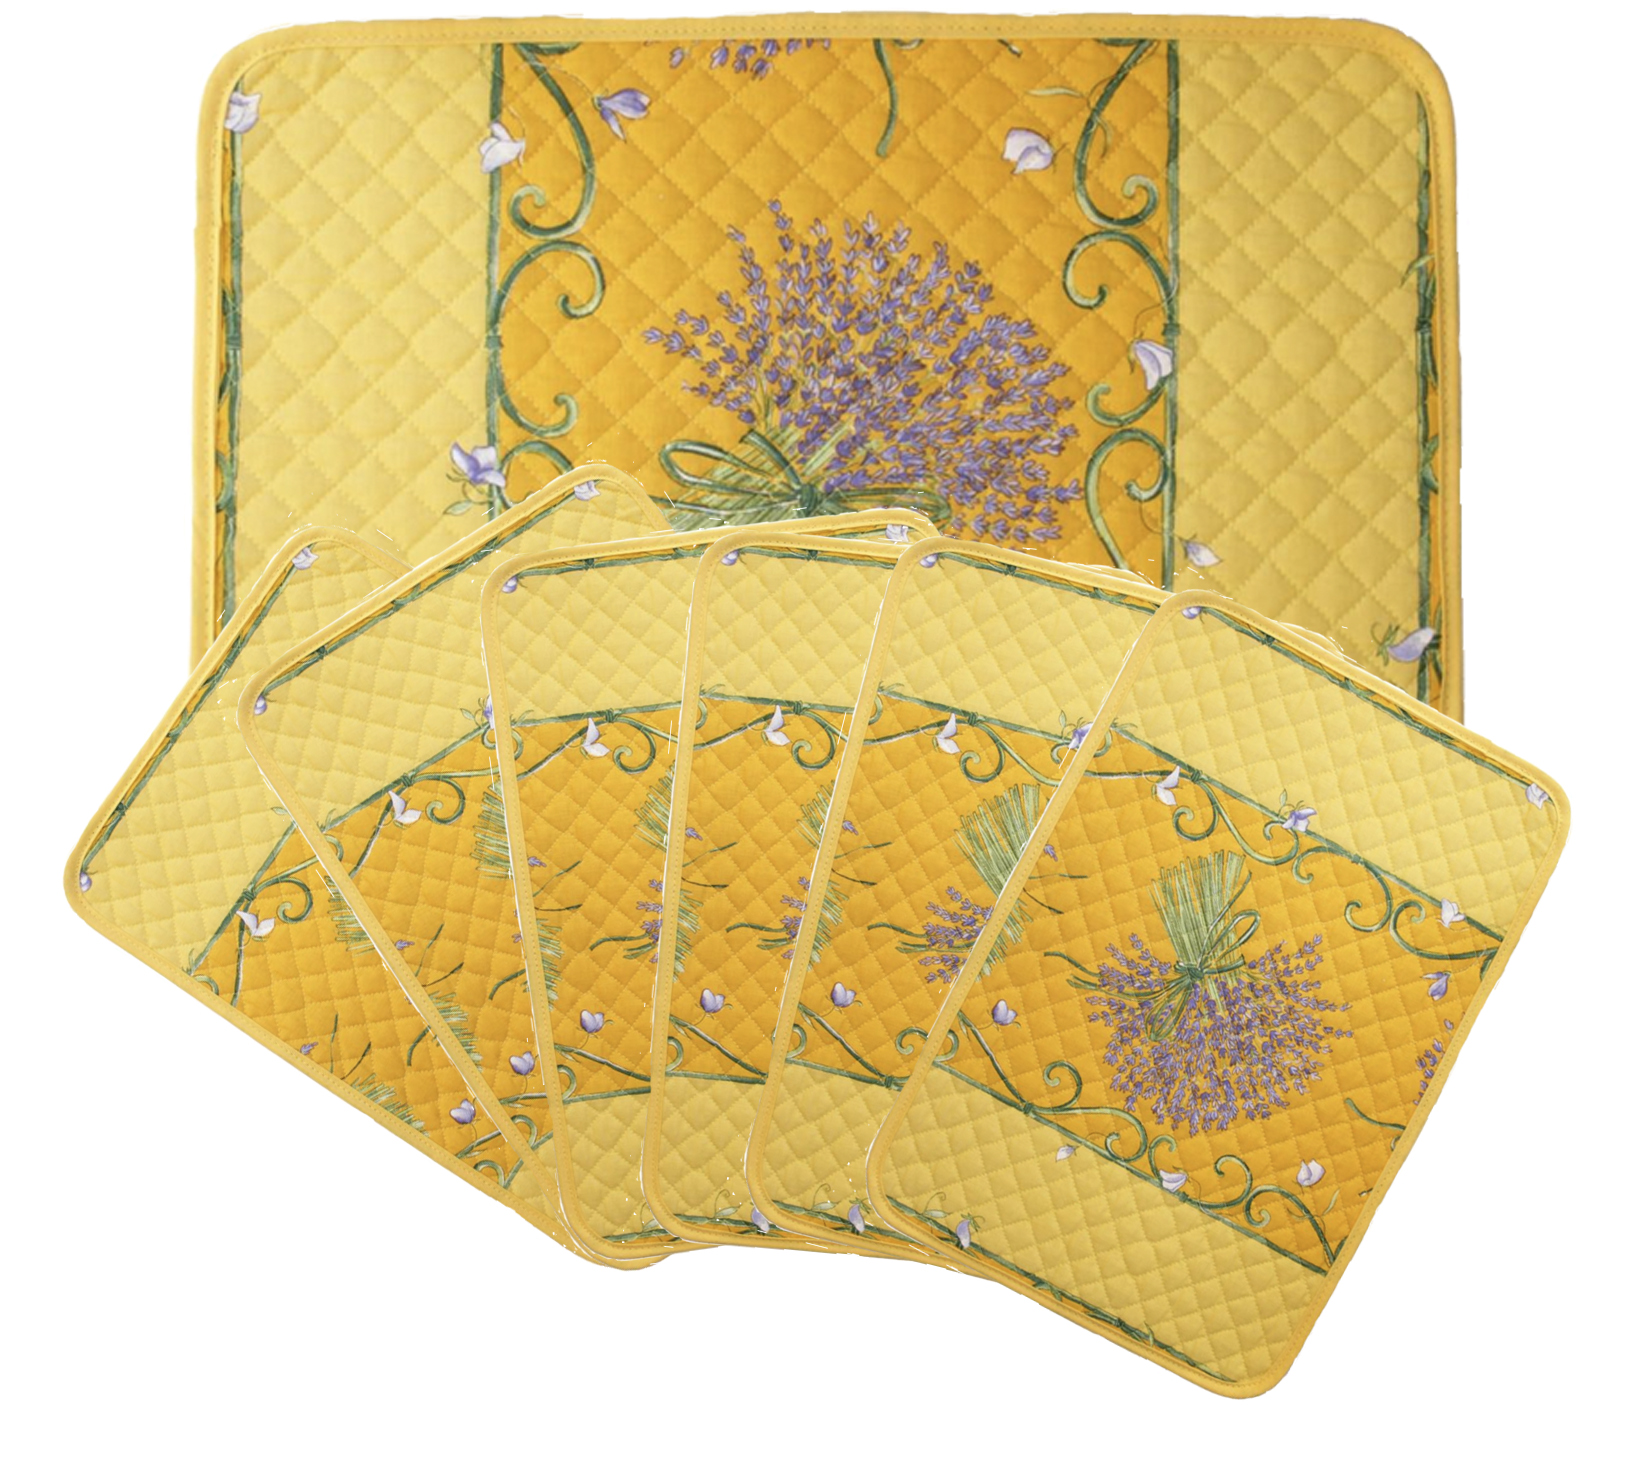 """French Acrylic Coated Placemats Collection """"Bouquet"""" Yellow: Lavender Motif, Size 17"""" x 11"""", Price $94.95 for a Set of 6"""